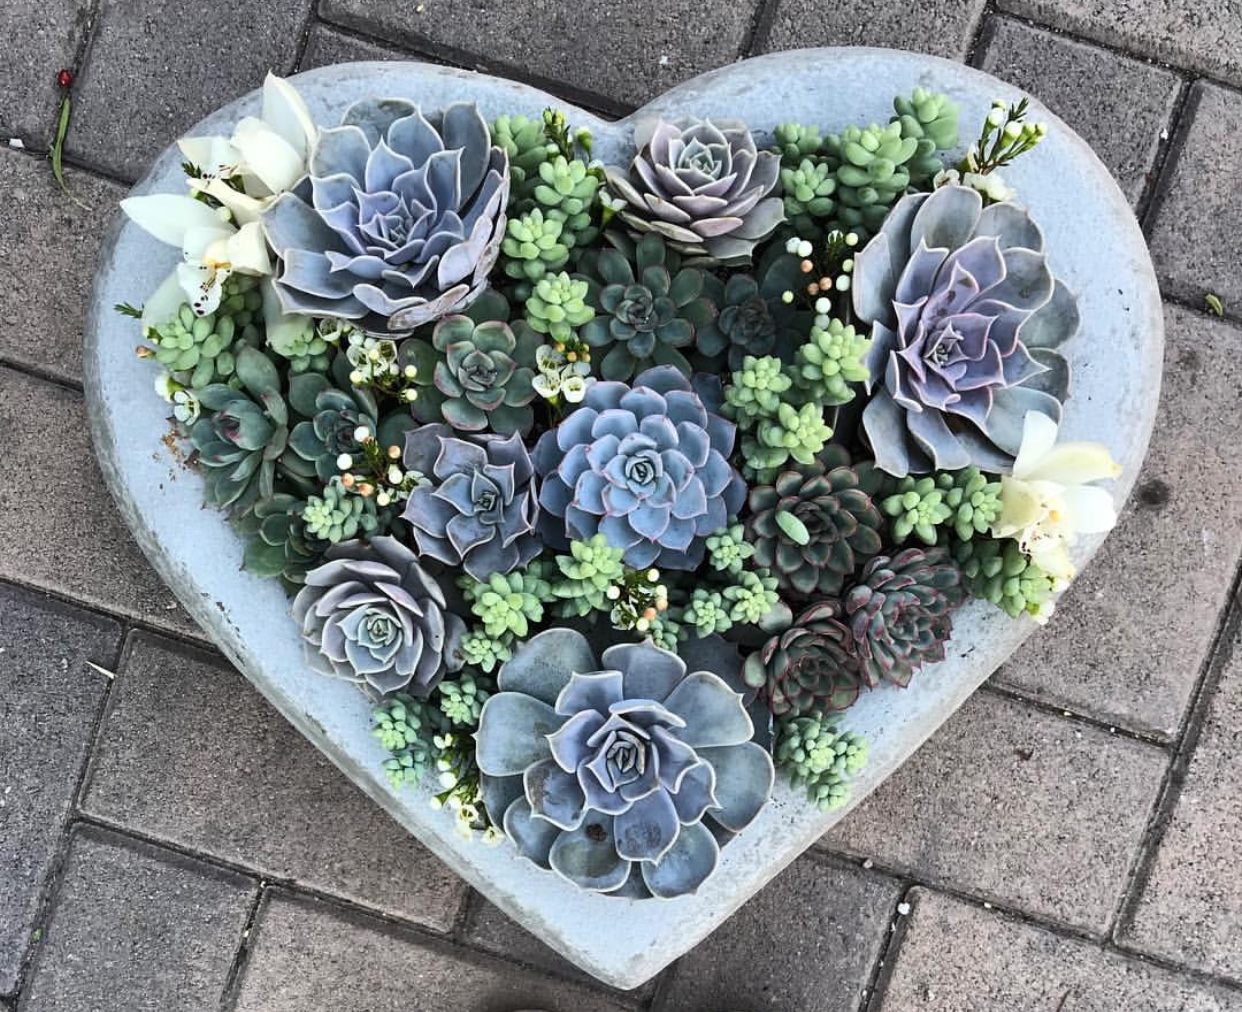 48. Heart Succulents